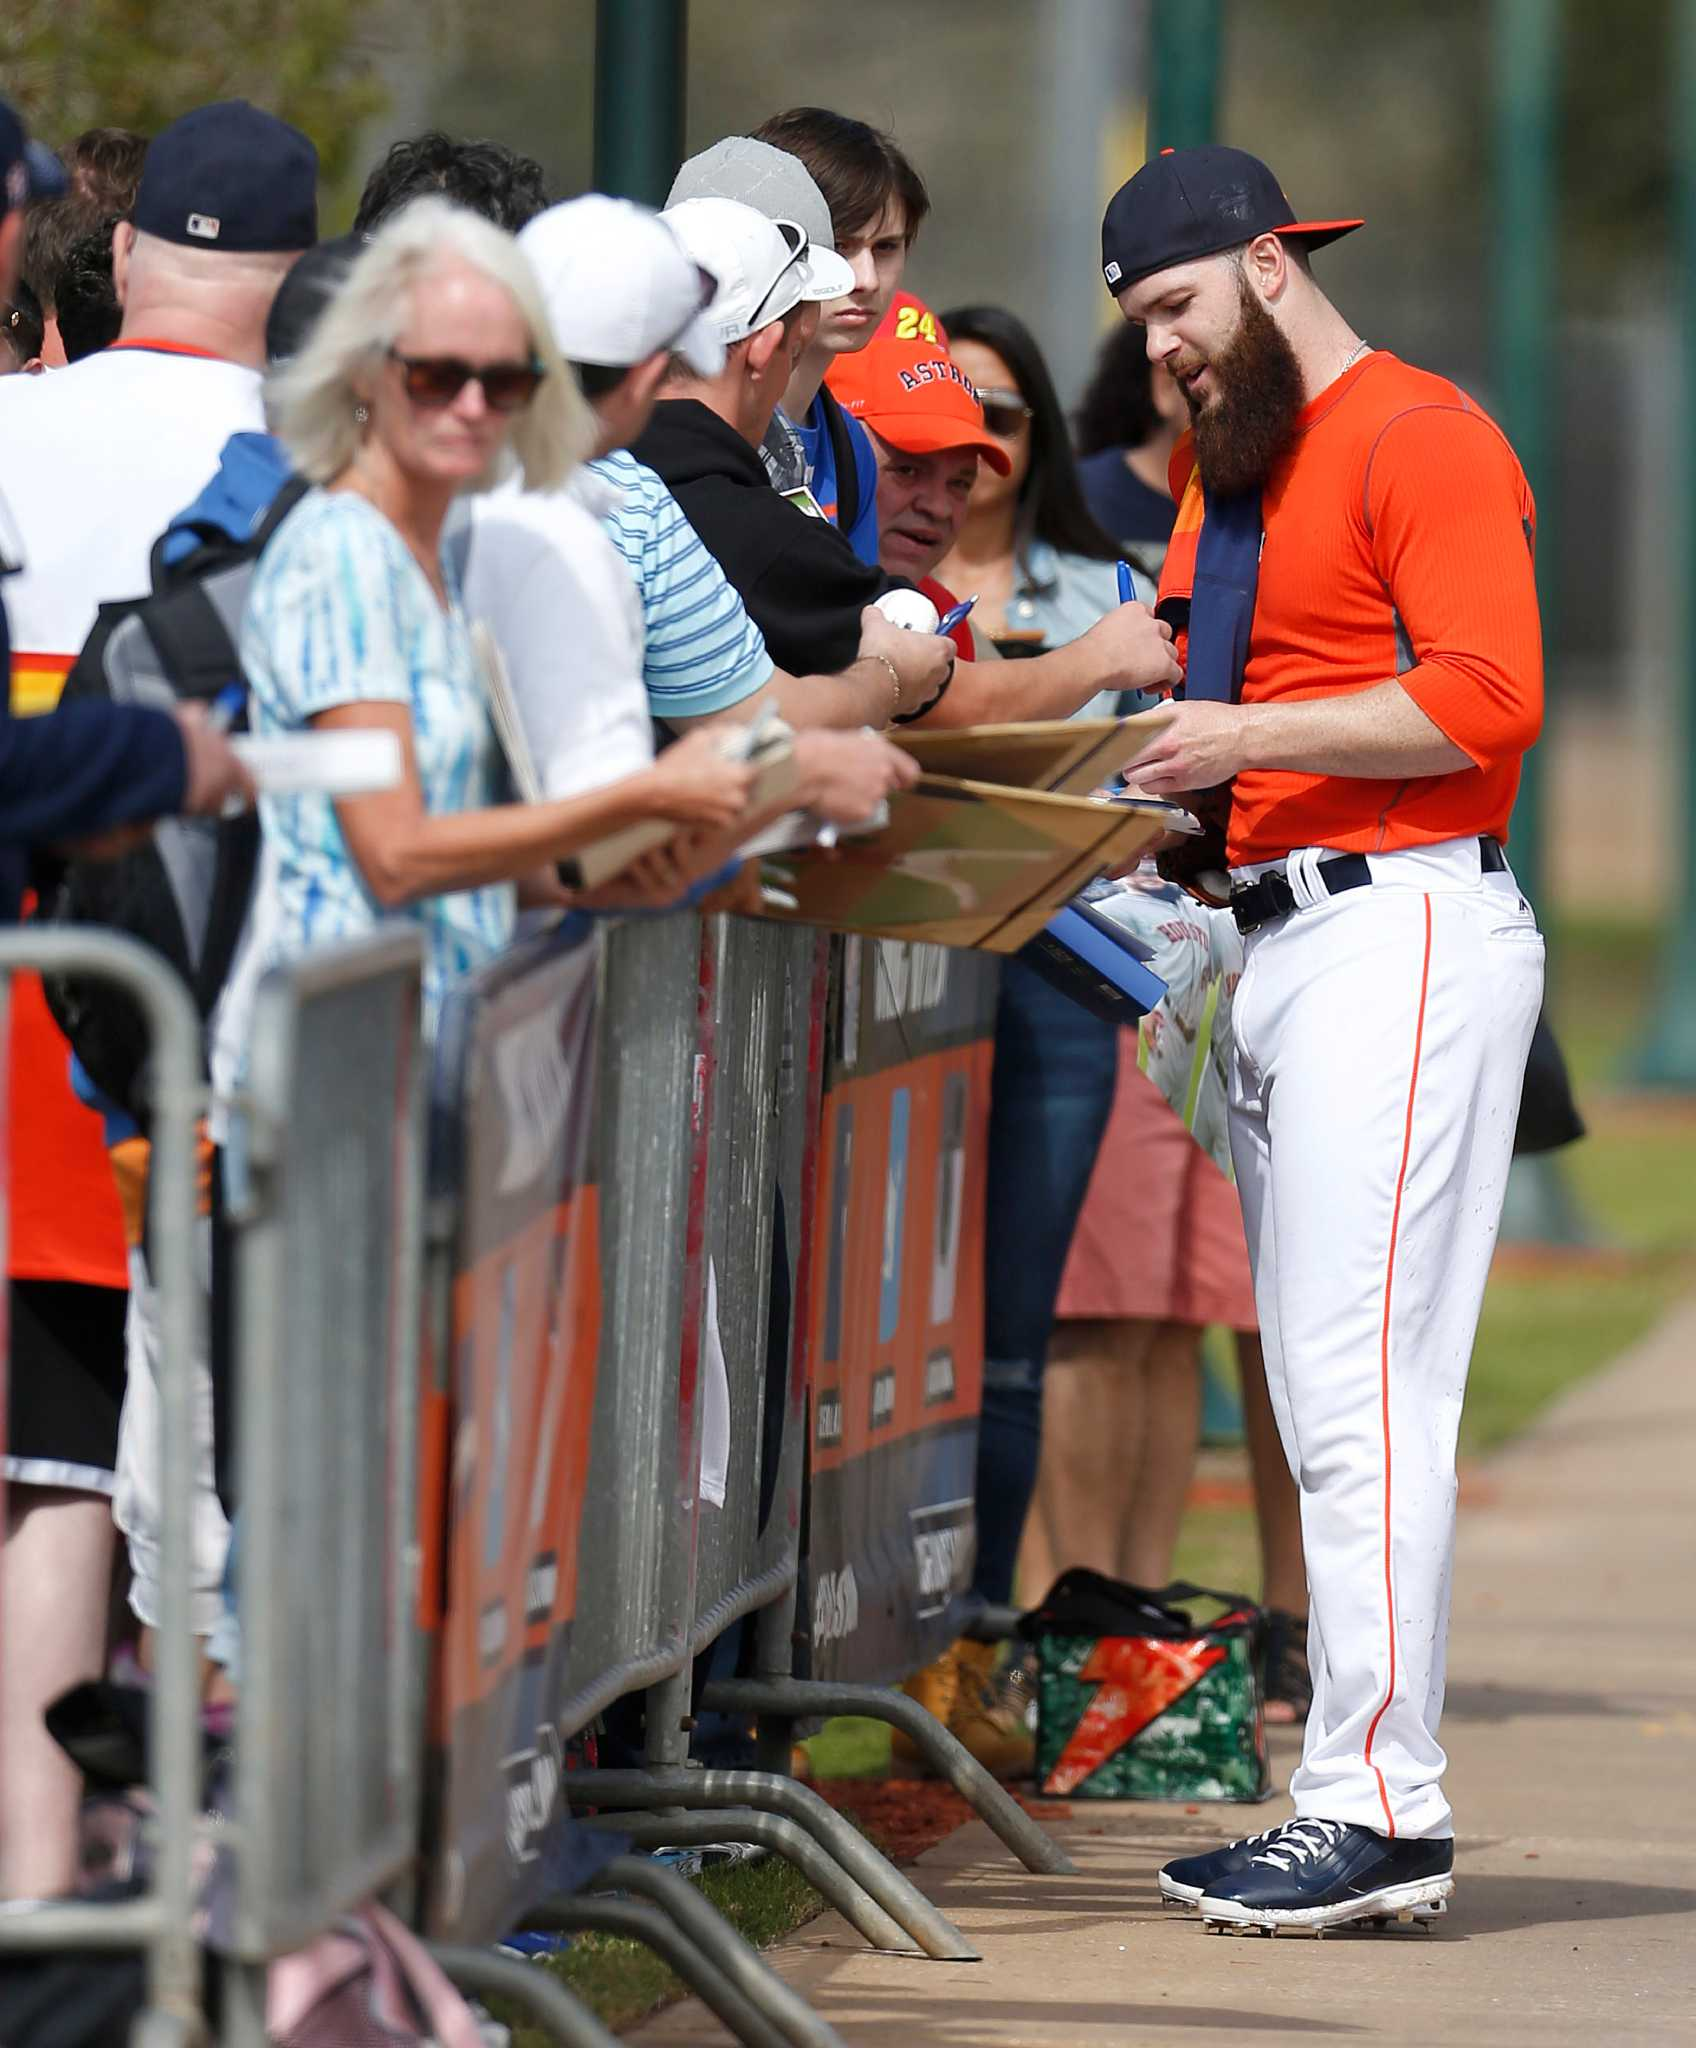 Ap Was There Shock Then Terror As Columbine Attack: Dallas Keuchel Says He'll Eventually Shave Beard For